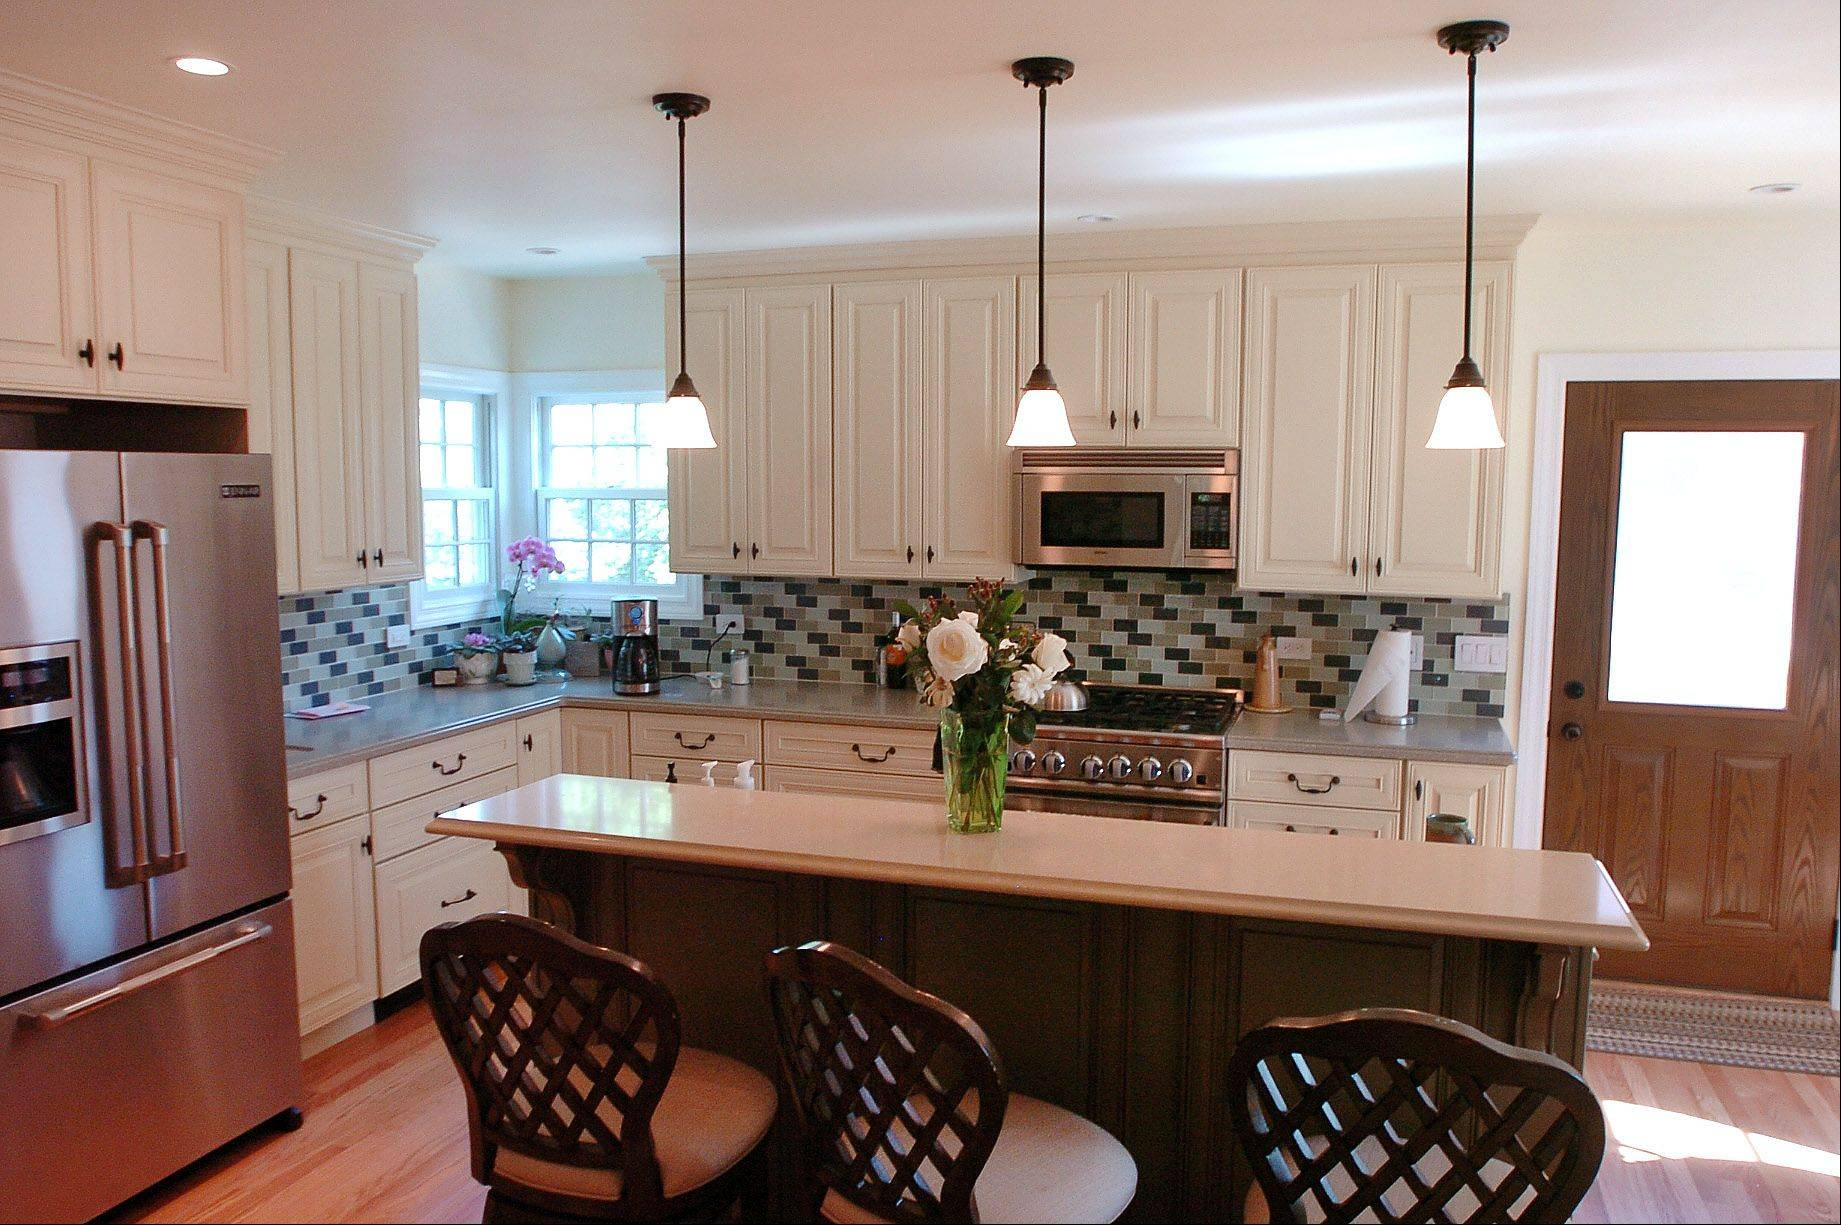 Daisy Kessler selected the finishes when she and her husband Mike Martini expanded the kitchen in their Arlington Heights home.